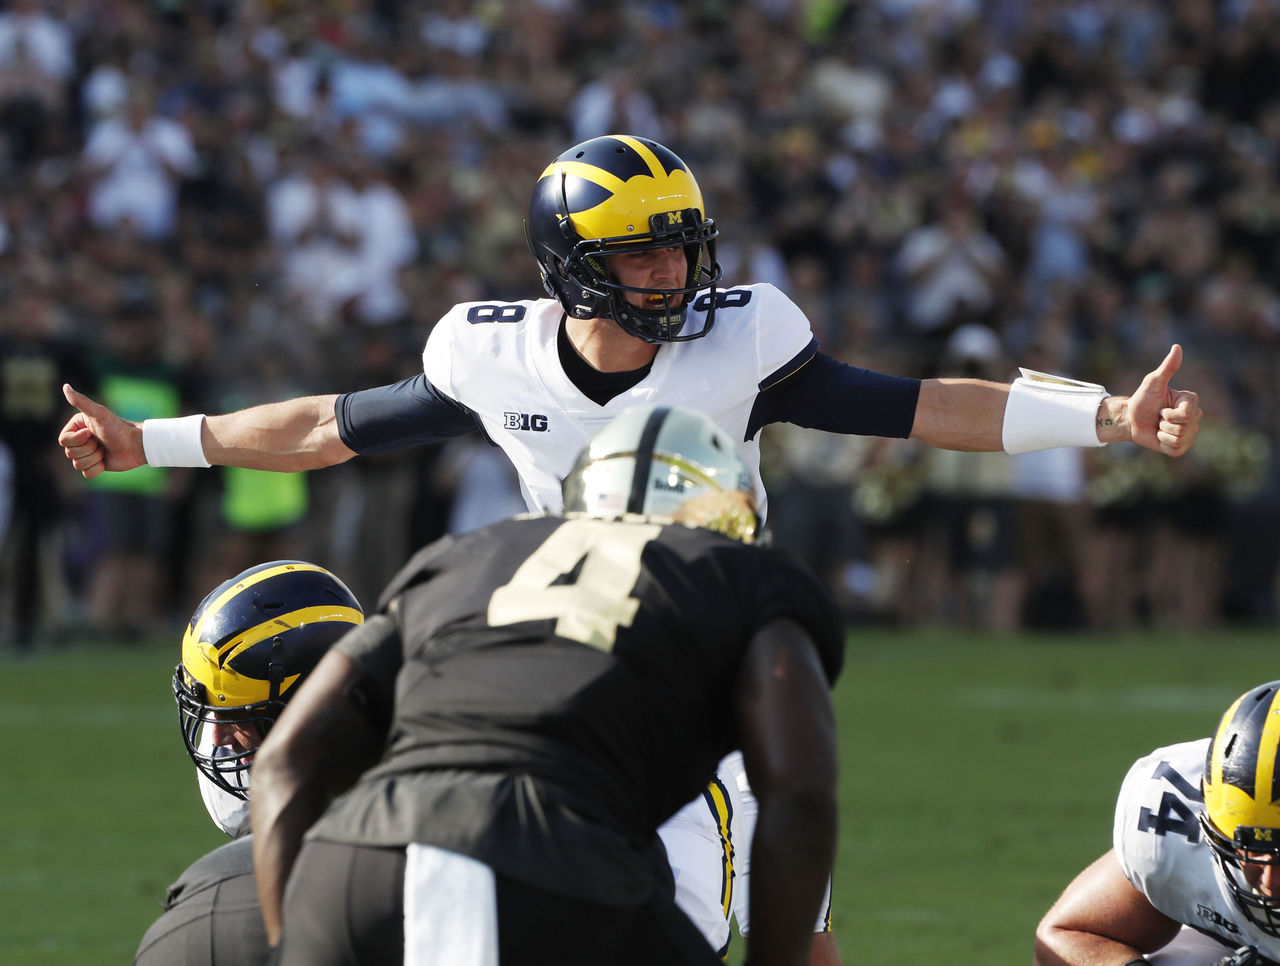 Cropped 2017 09 23t222352z 1538239204 nocid rtrmadp 3 ncaa football michigan at purdue